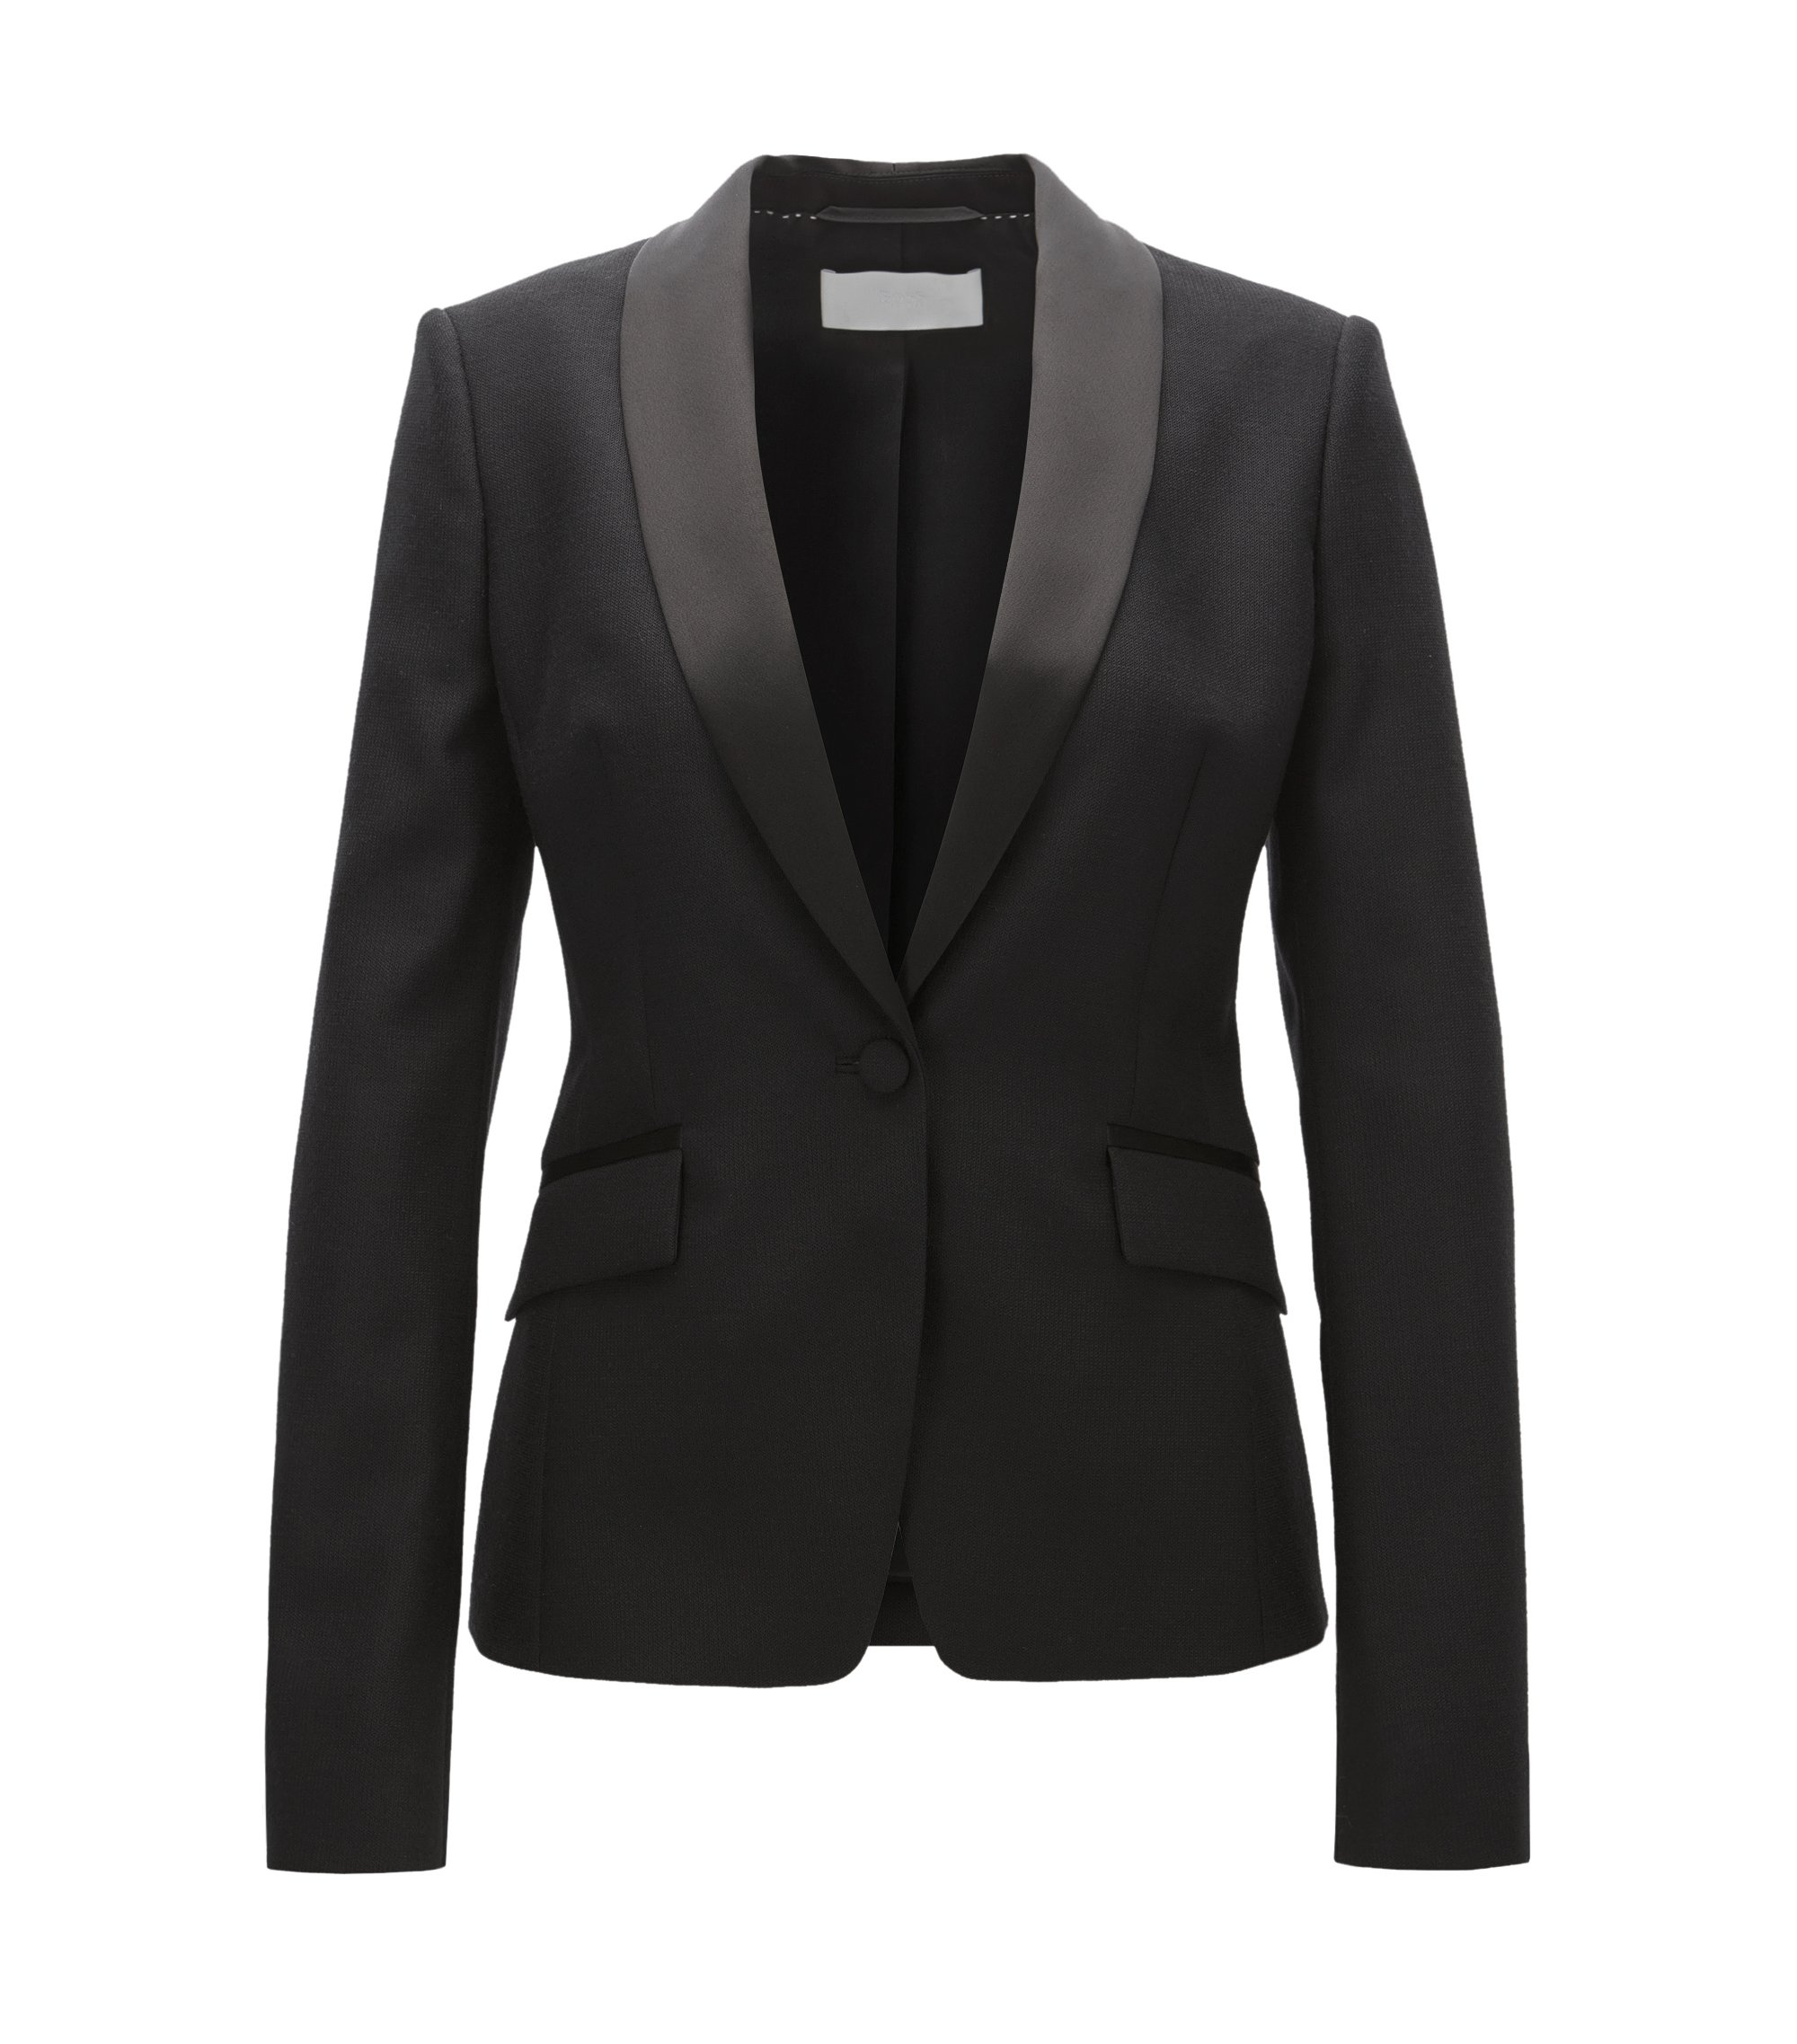 Virgin Wool Tuxedo Jacket | Jivuna, Black